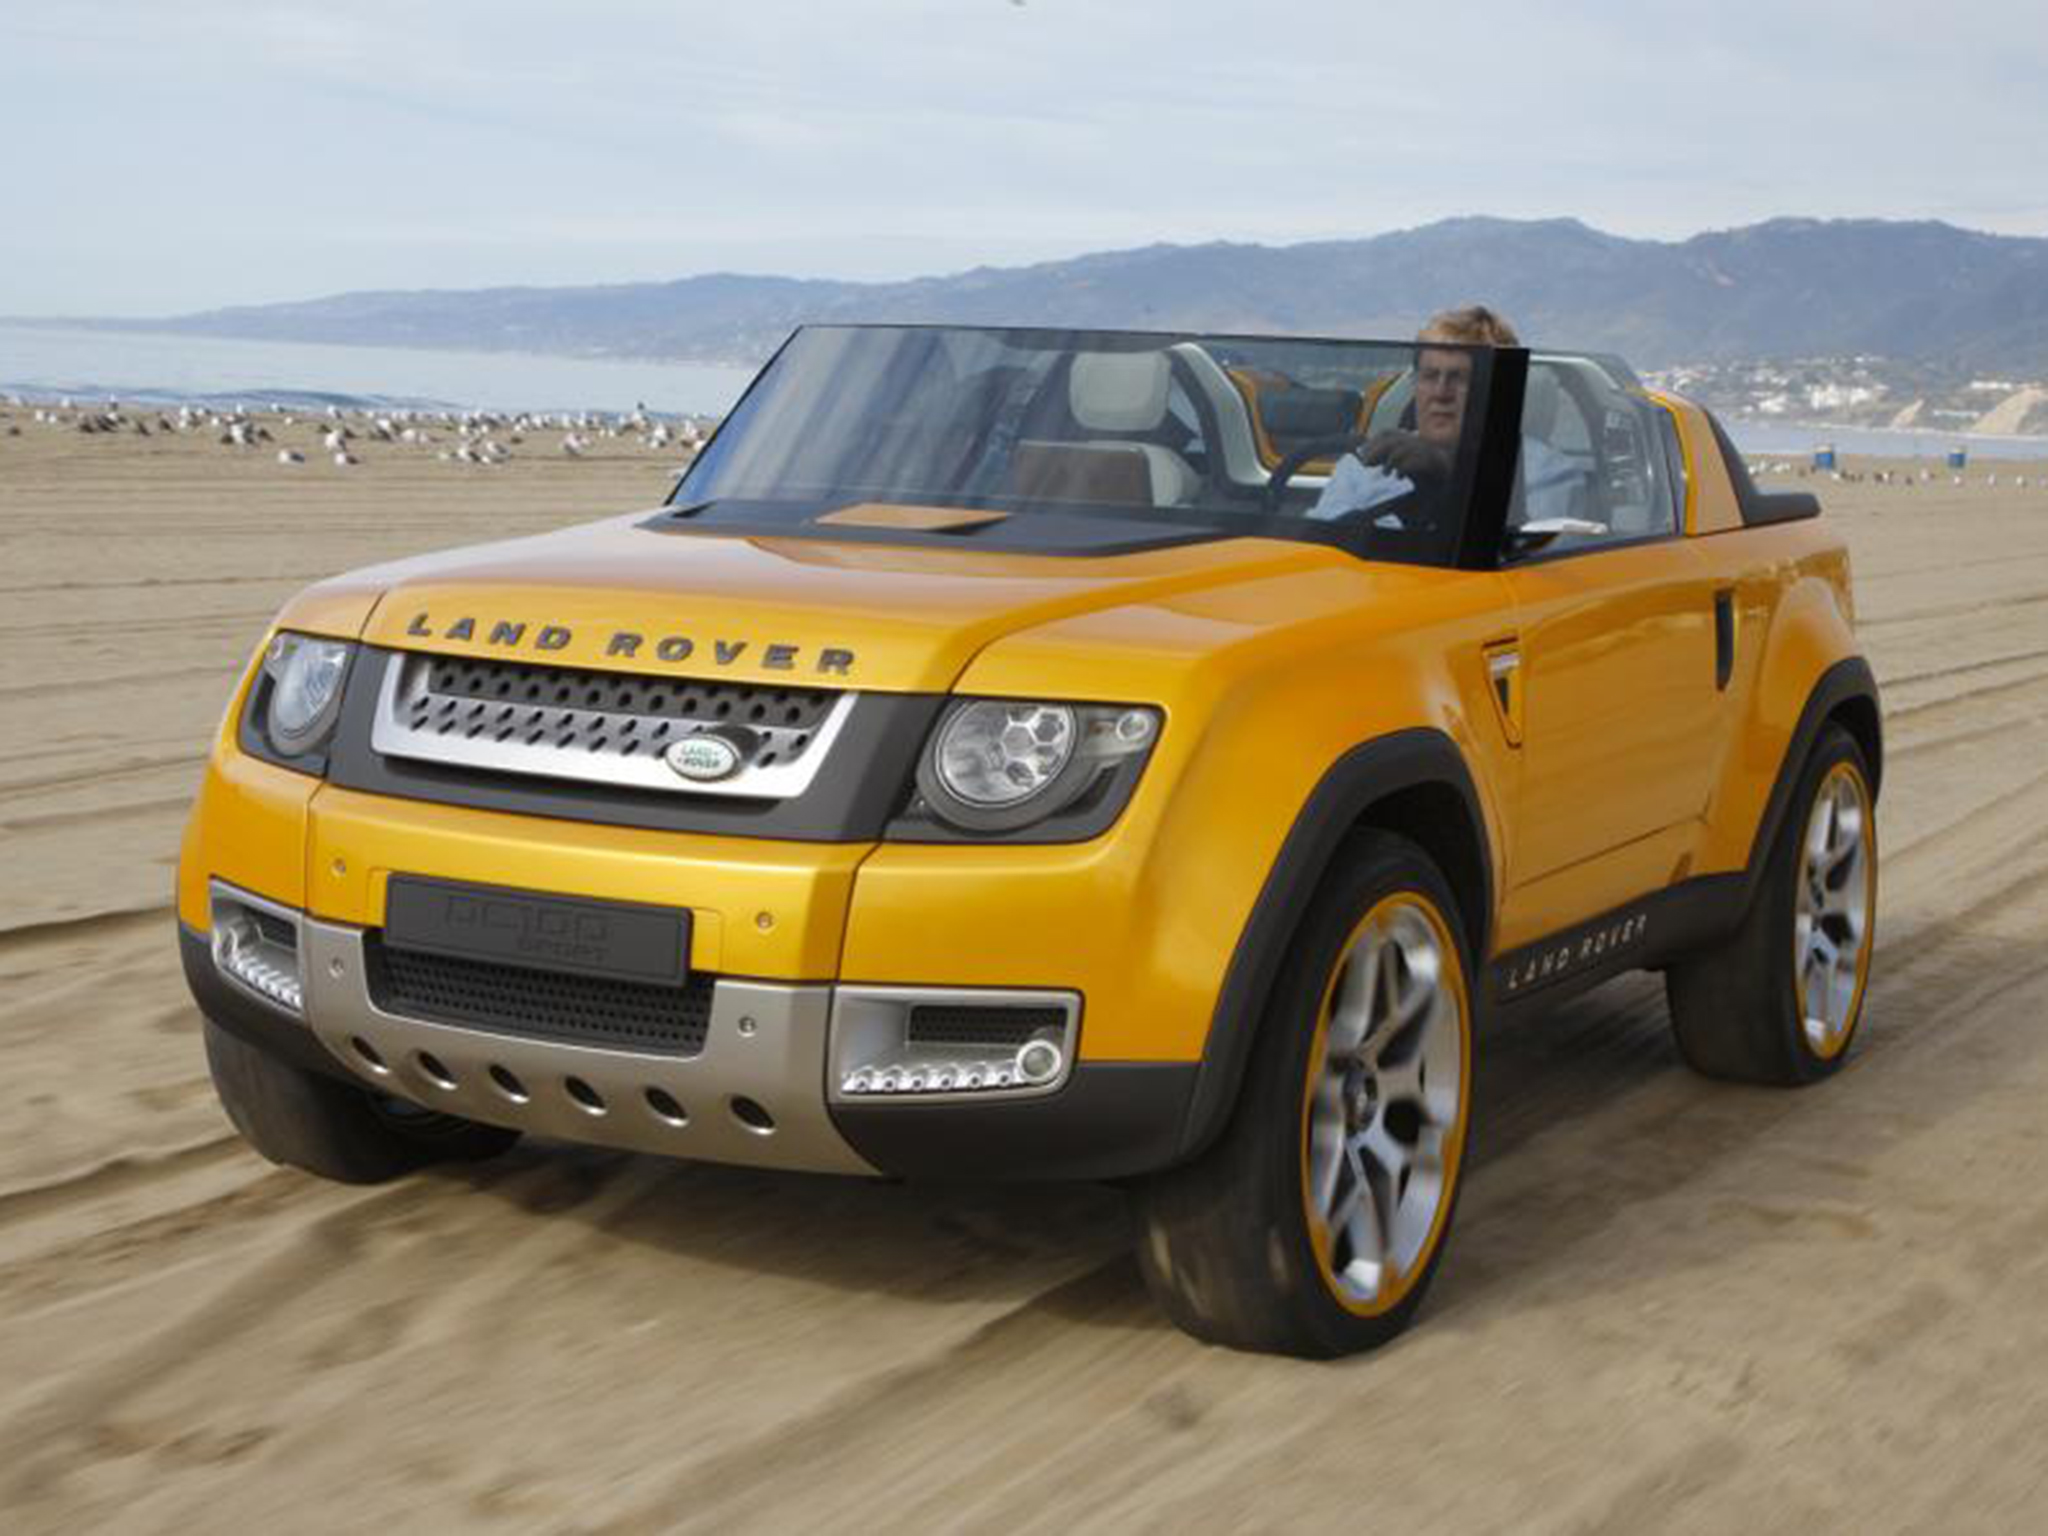 Purchasing a Landrover? Some tips and tricks to keep in mind.